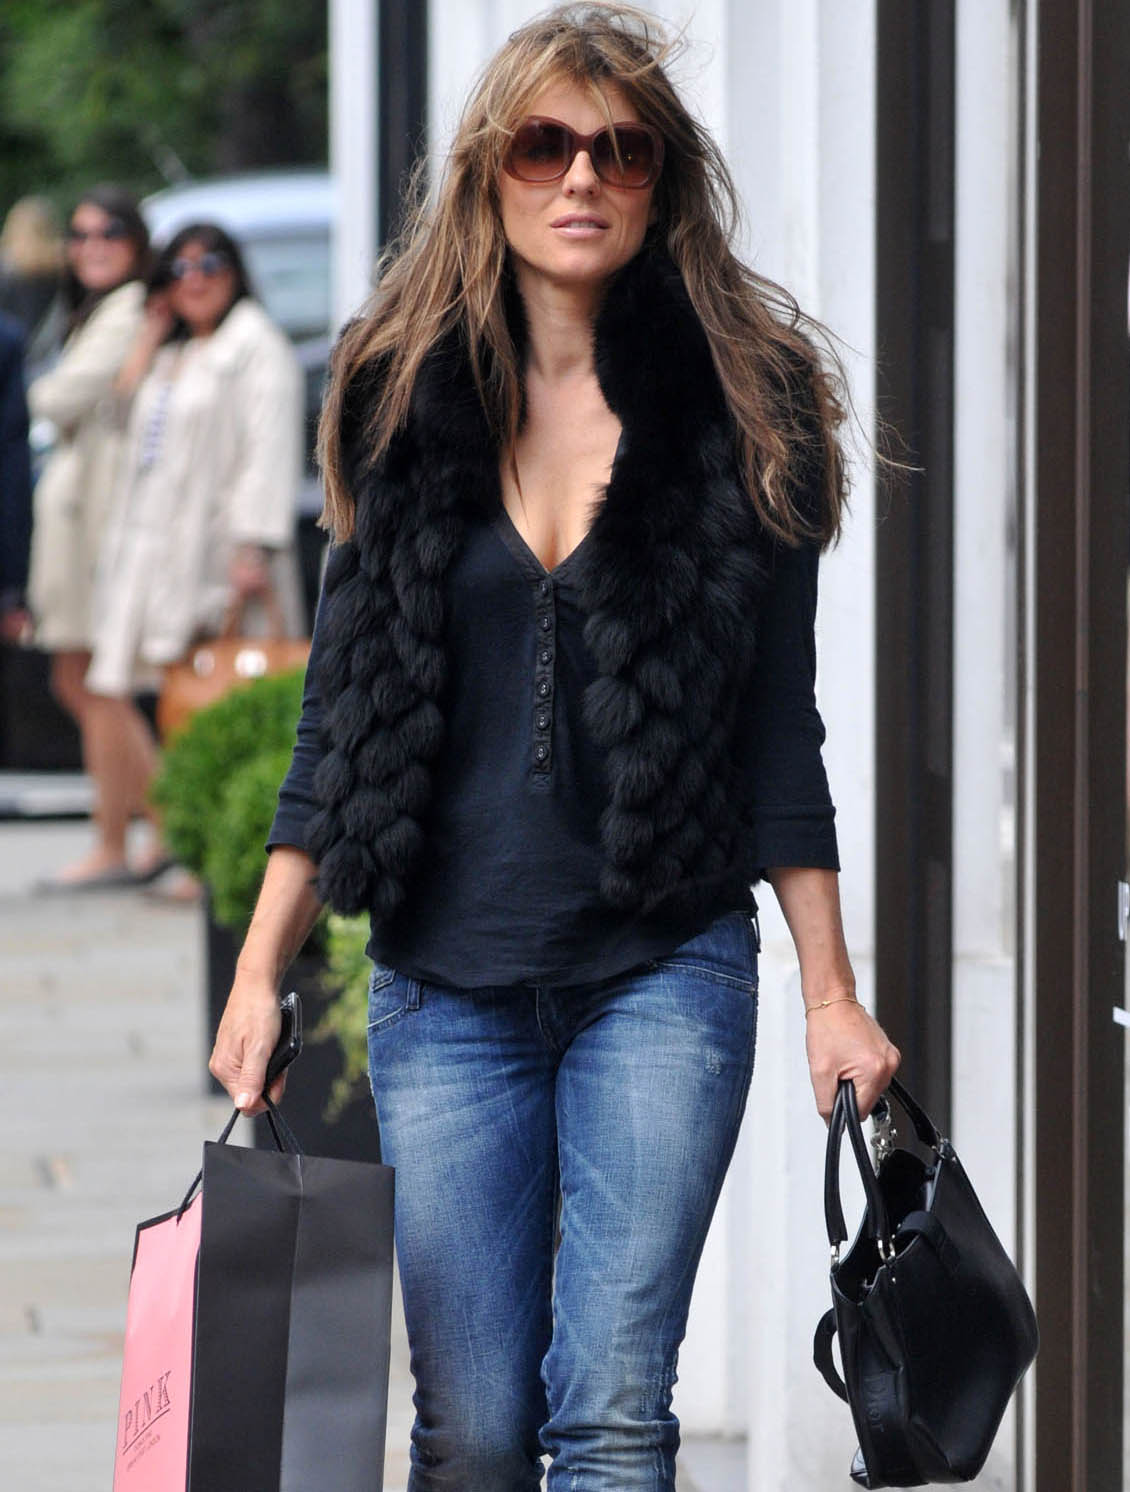 big 24June2011 fp 7504185 Elizabeth Hurley normally manages to keep herself perfectly put together, ...